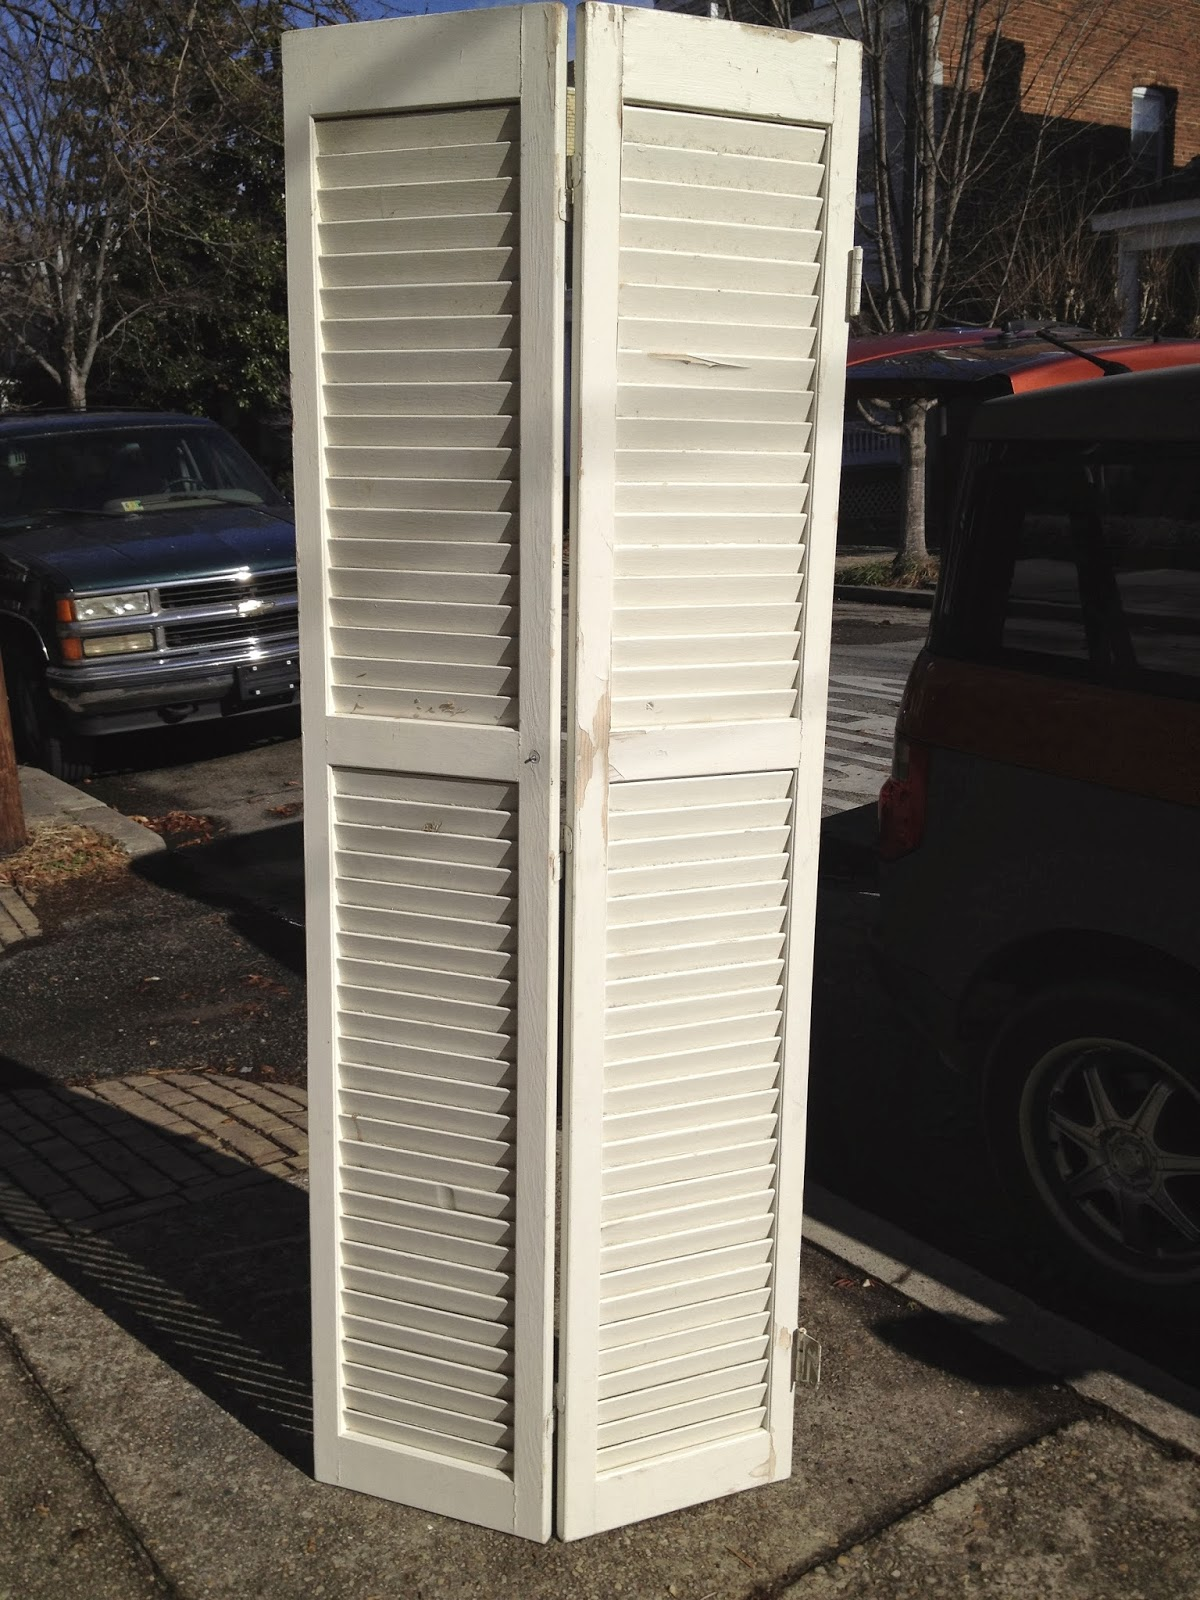 1600 #9B4330 SheShe The Home Magician: Old Louvered Closet Door Becomes Headboard pic Louvered Exterior Doors Metal 39111200